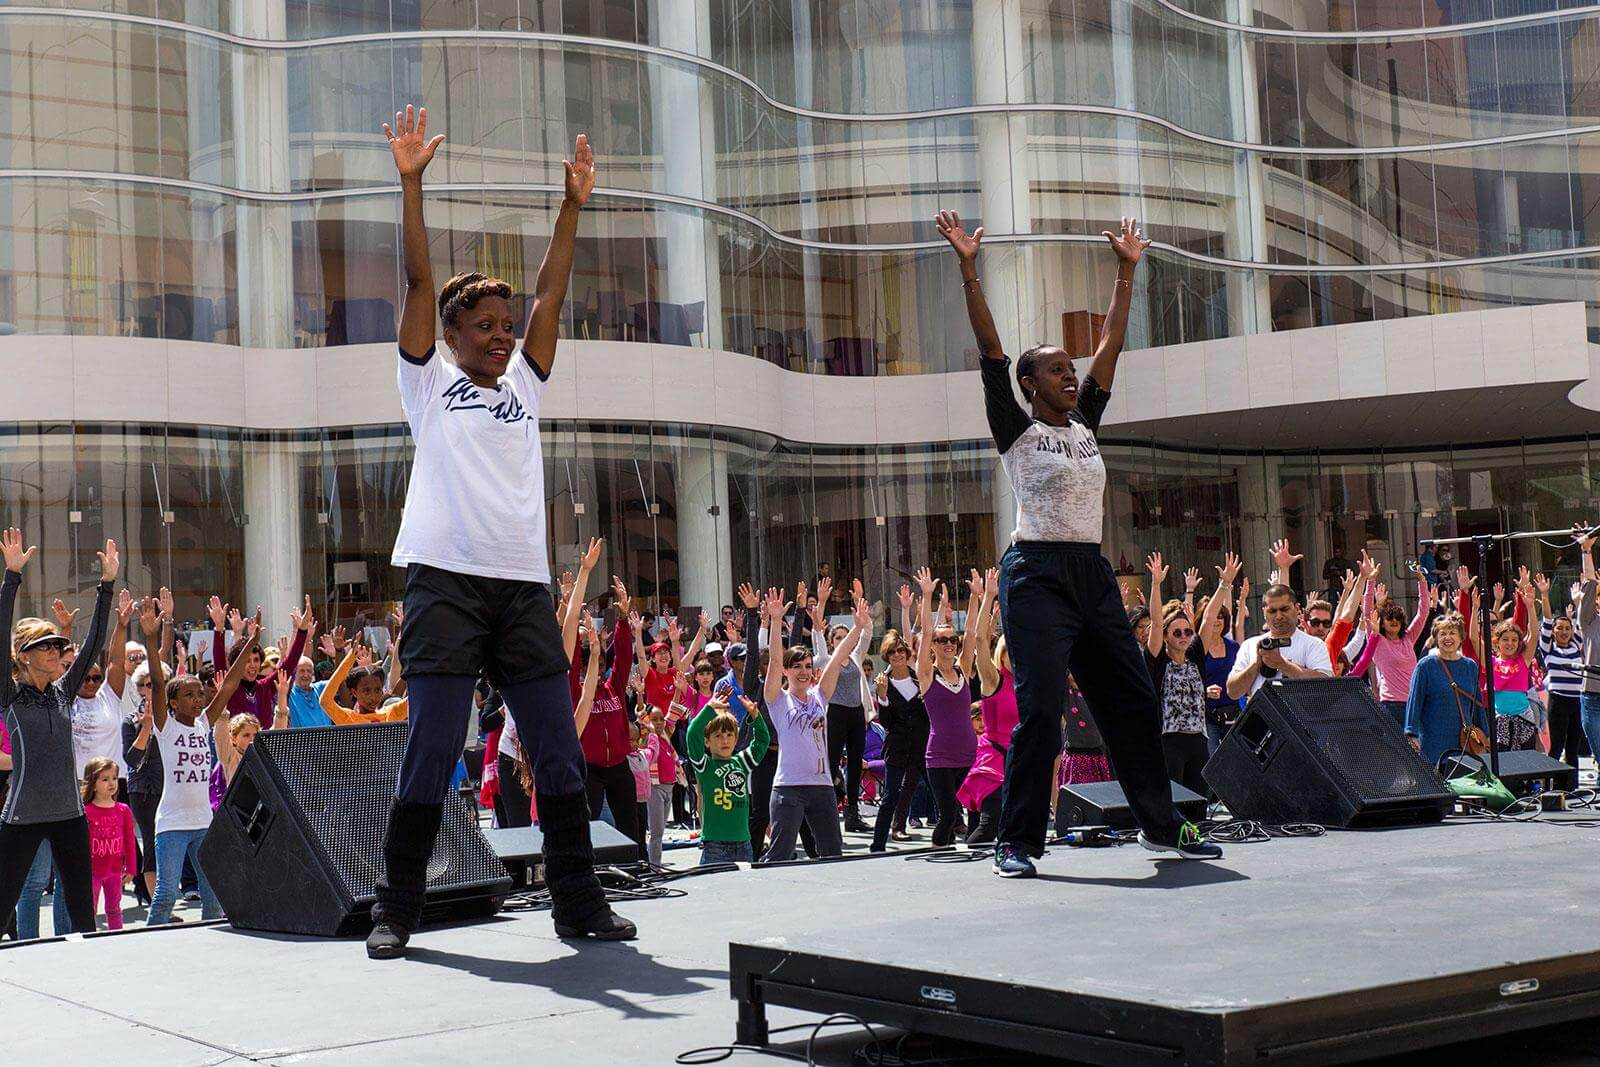 Former Ailey dancer Renee Robinson and Ailey master teacher Nasha Thomas leading a Revelations Celebration at the Segerstrom Center for the Arts in Costa Mesa, CA, photo by Joesan Diche